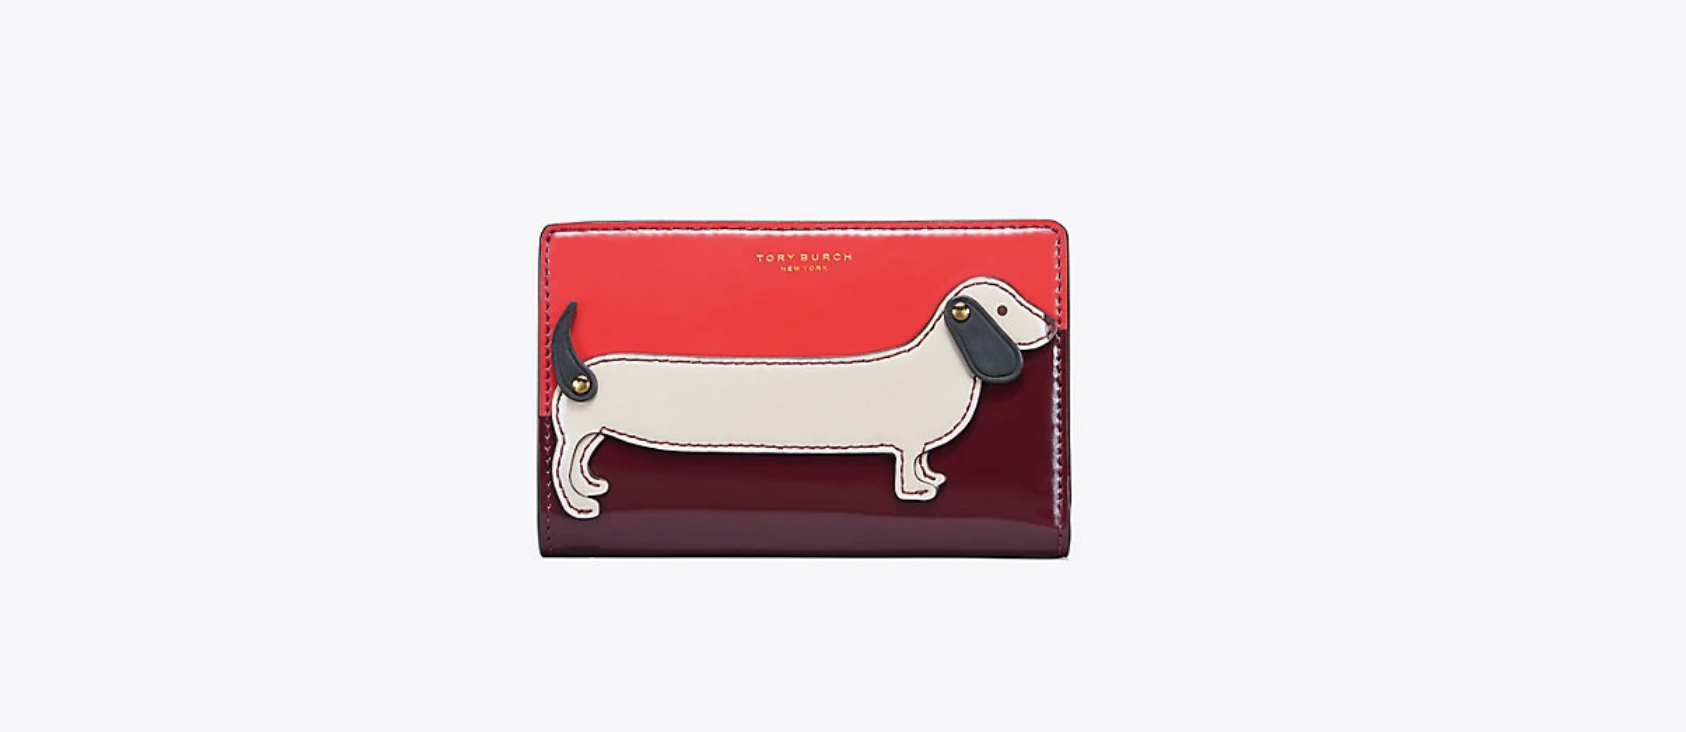 Image courtesy of Tory Burch